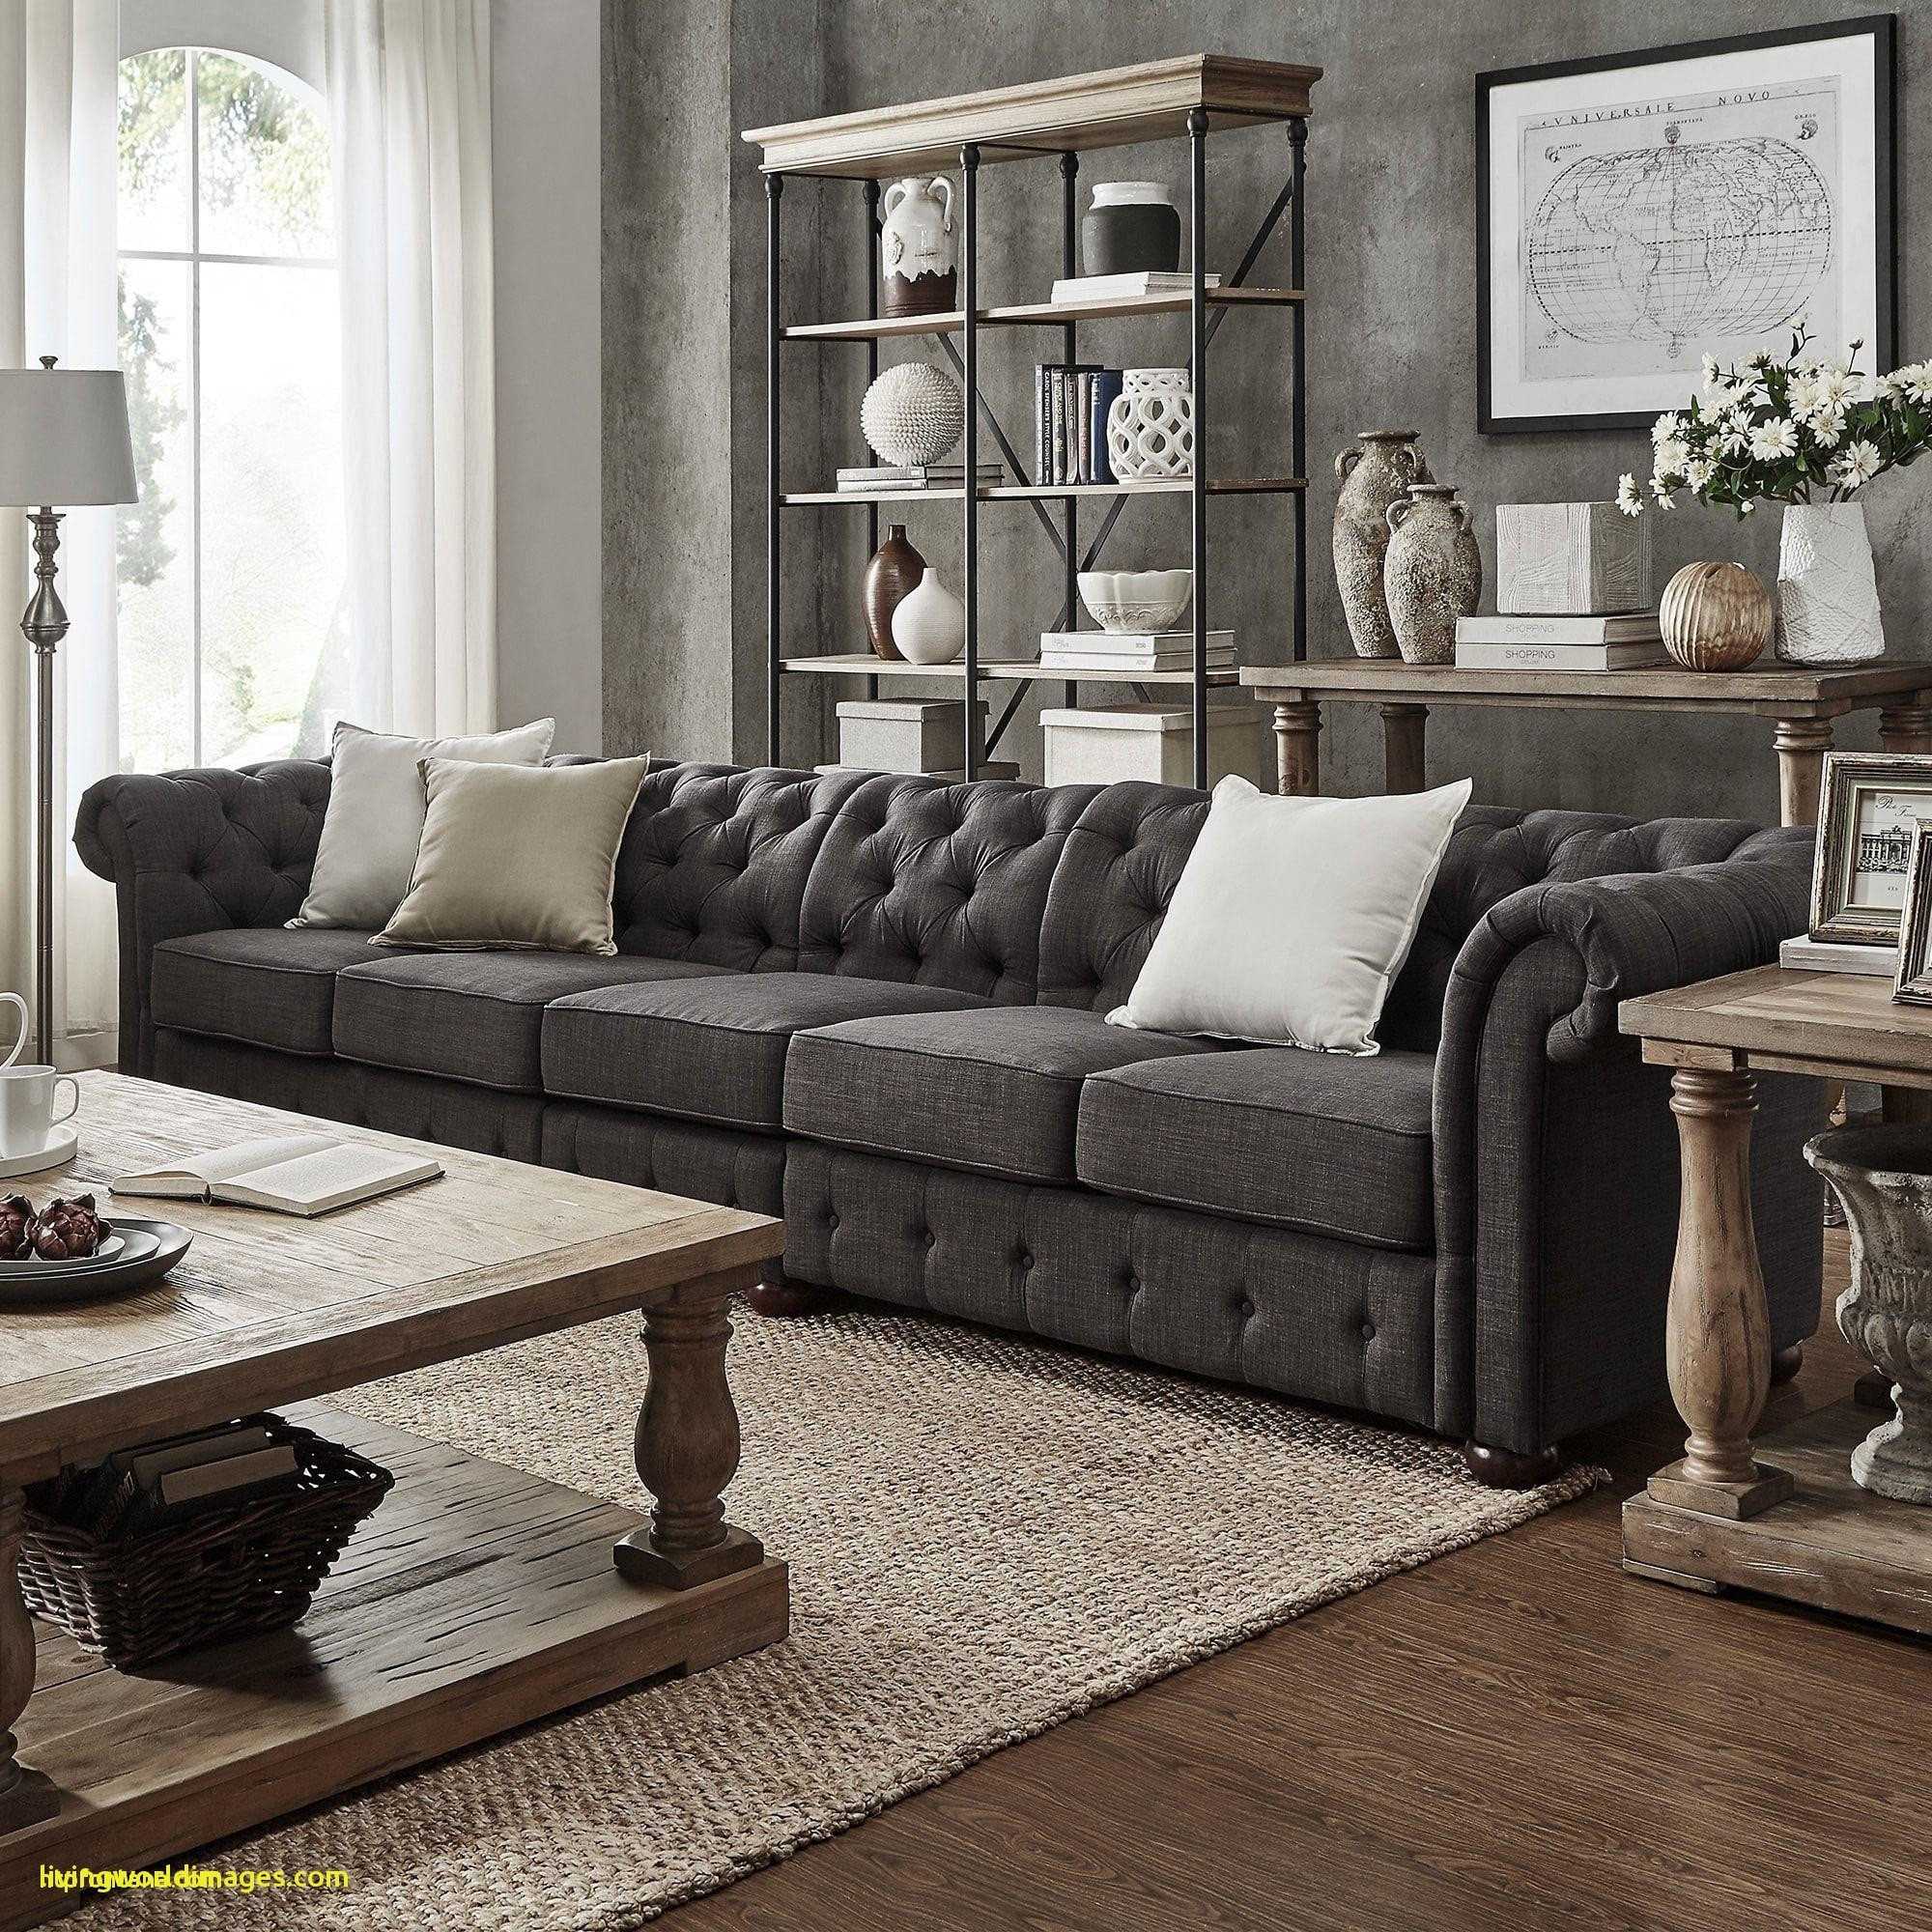 houzz living rooms with hardwood floors of living room 15 purple and brown living room likable luxury houzz with living room15 purple and brown living room likable luxury houzz living room gray sofa